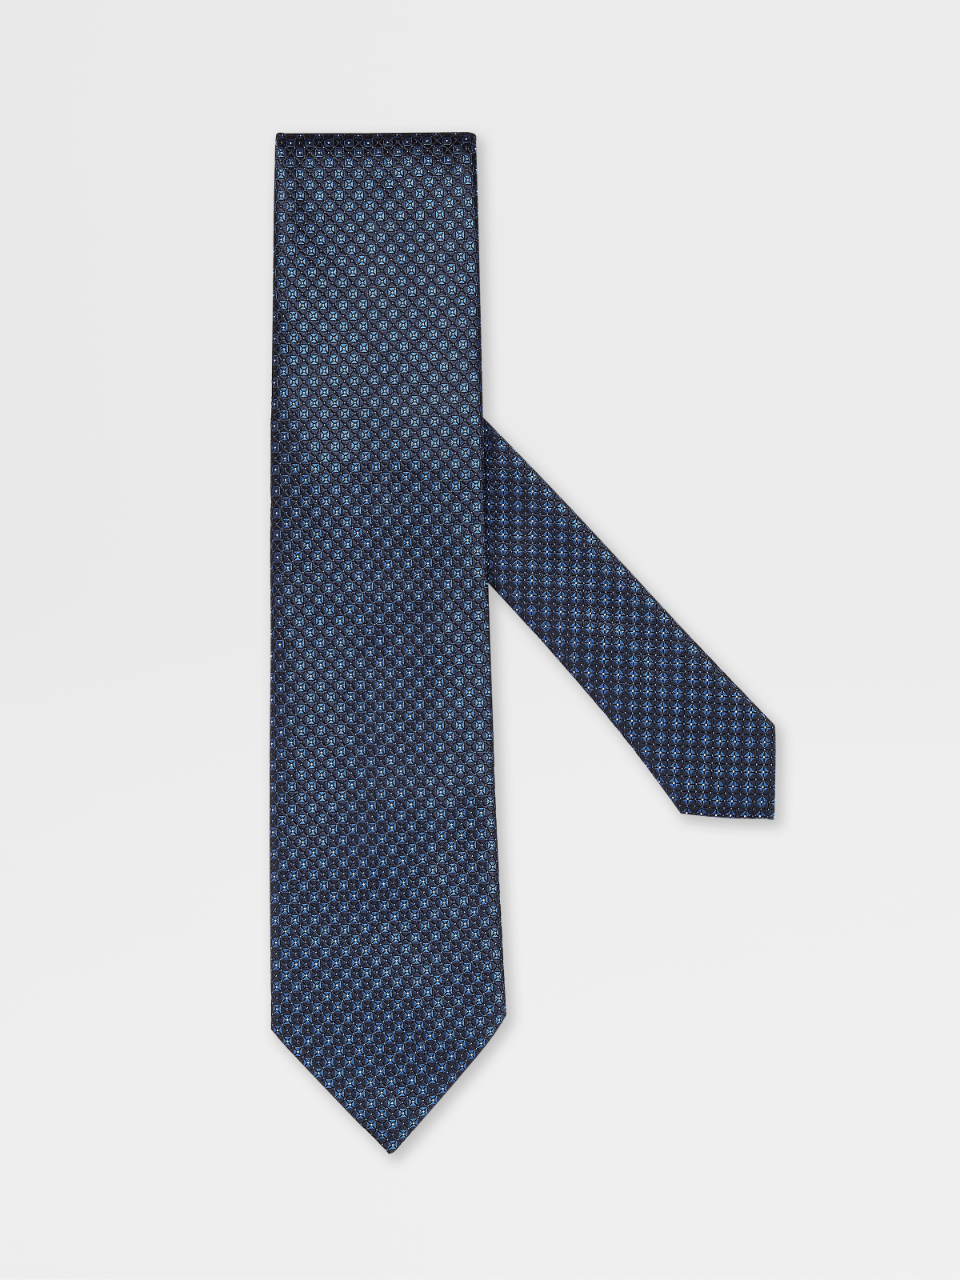 Printed Silk Microdesign Tie